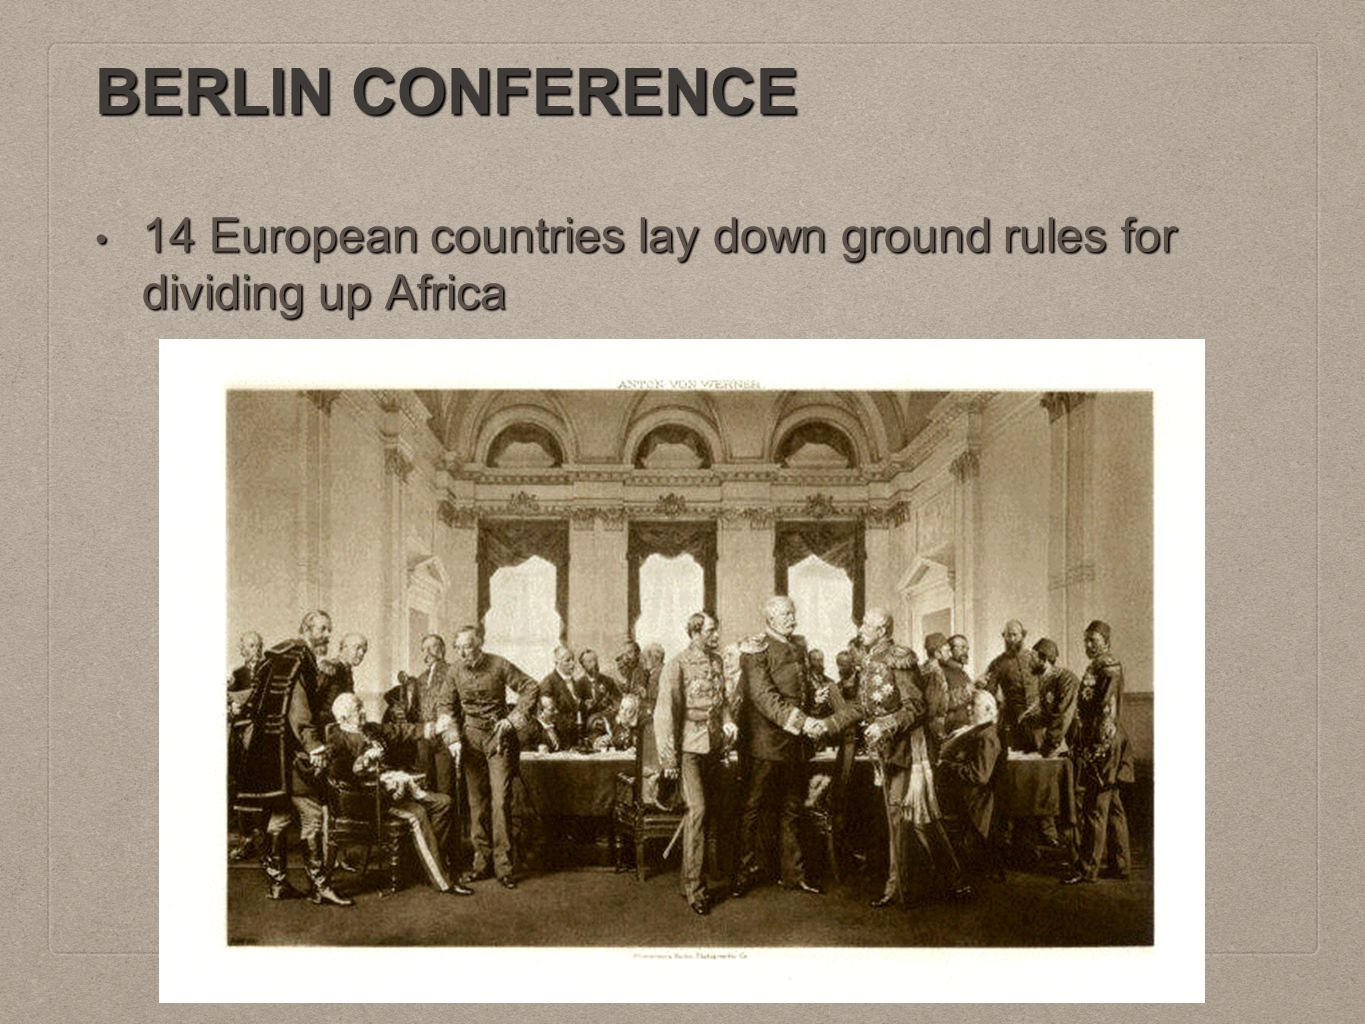 BERLIN CONFERENCE 14 European countries lay down ground rules for dividing up Africa 14 European countries lay down ground rules for dividing up Afric